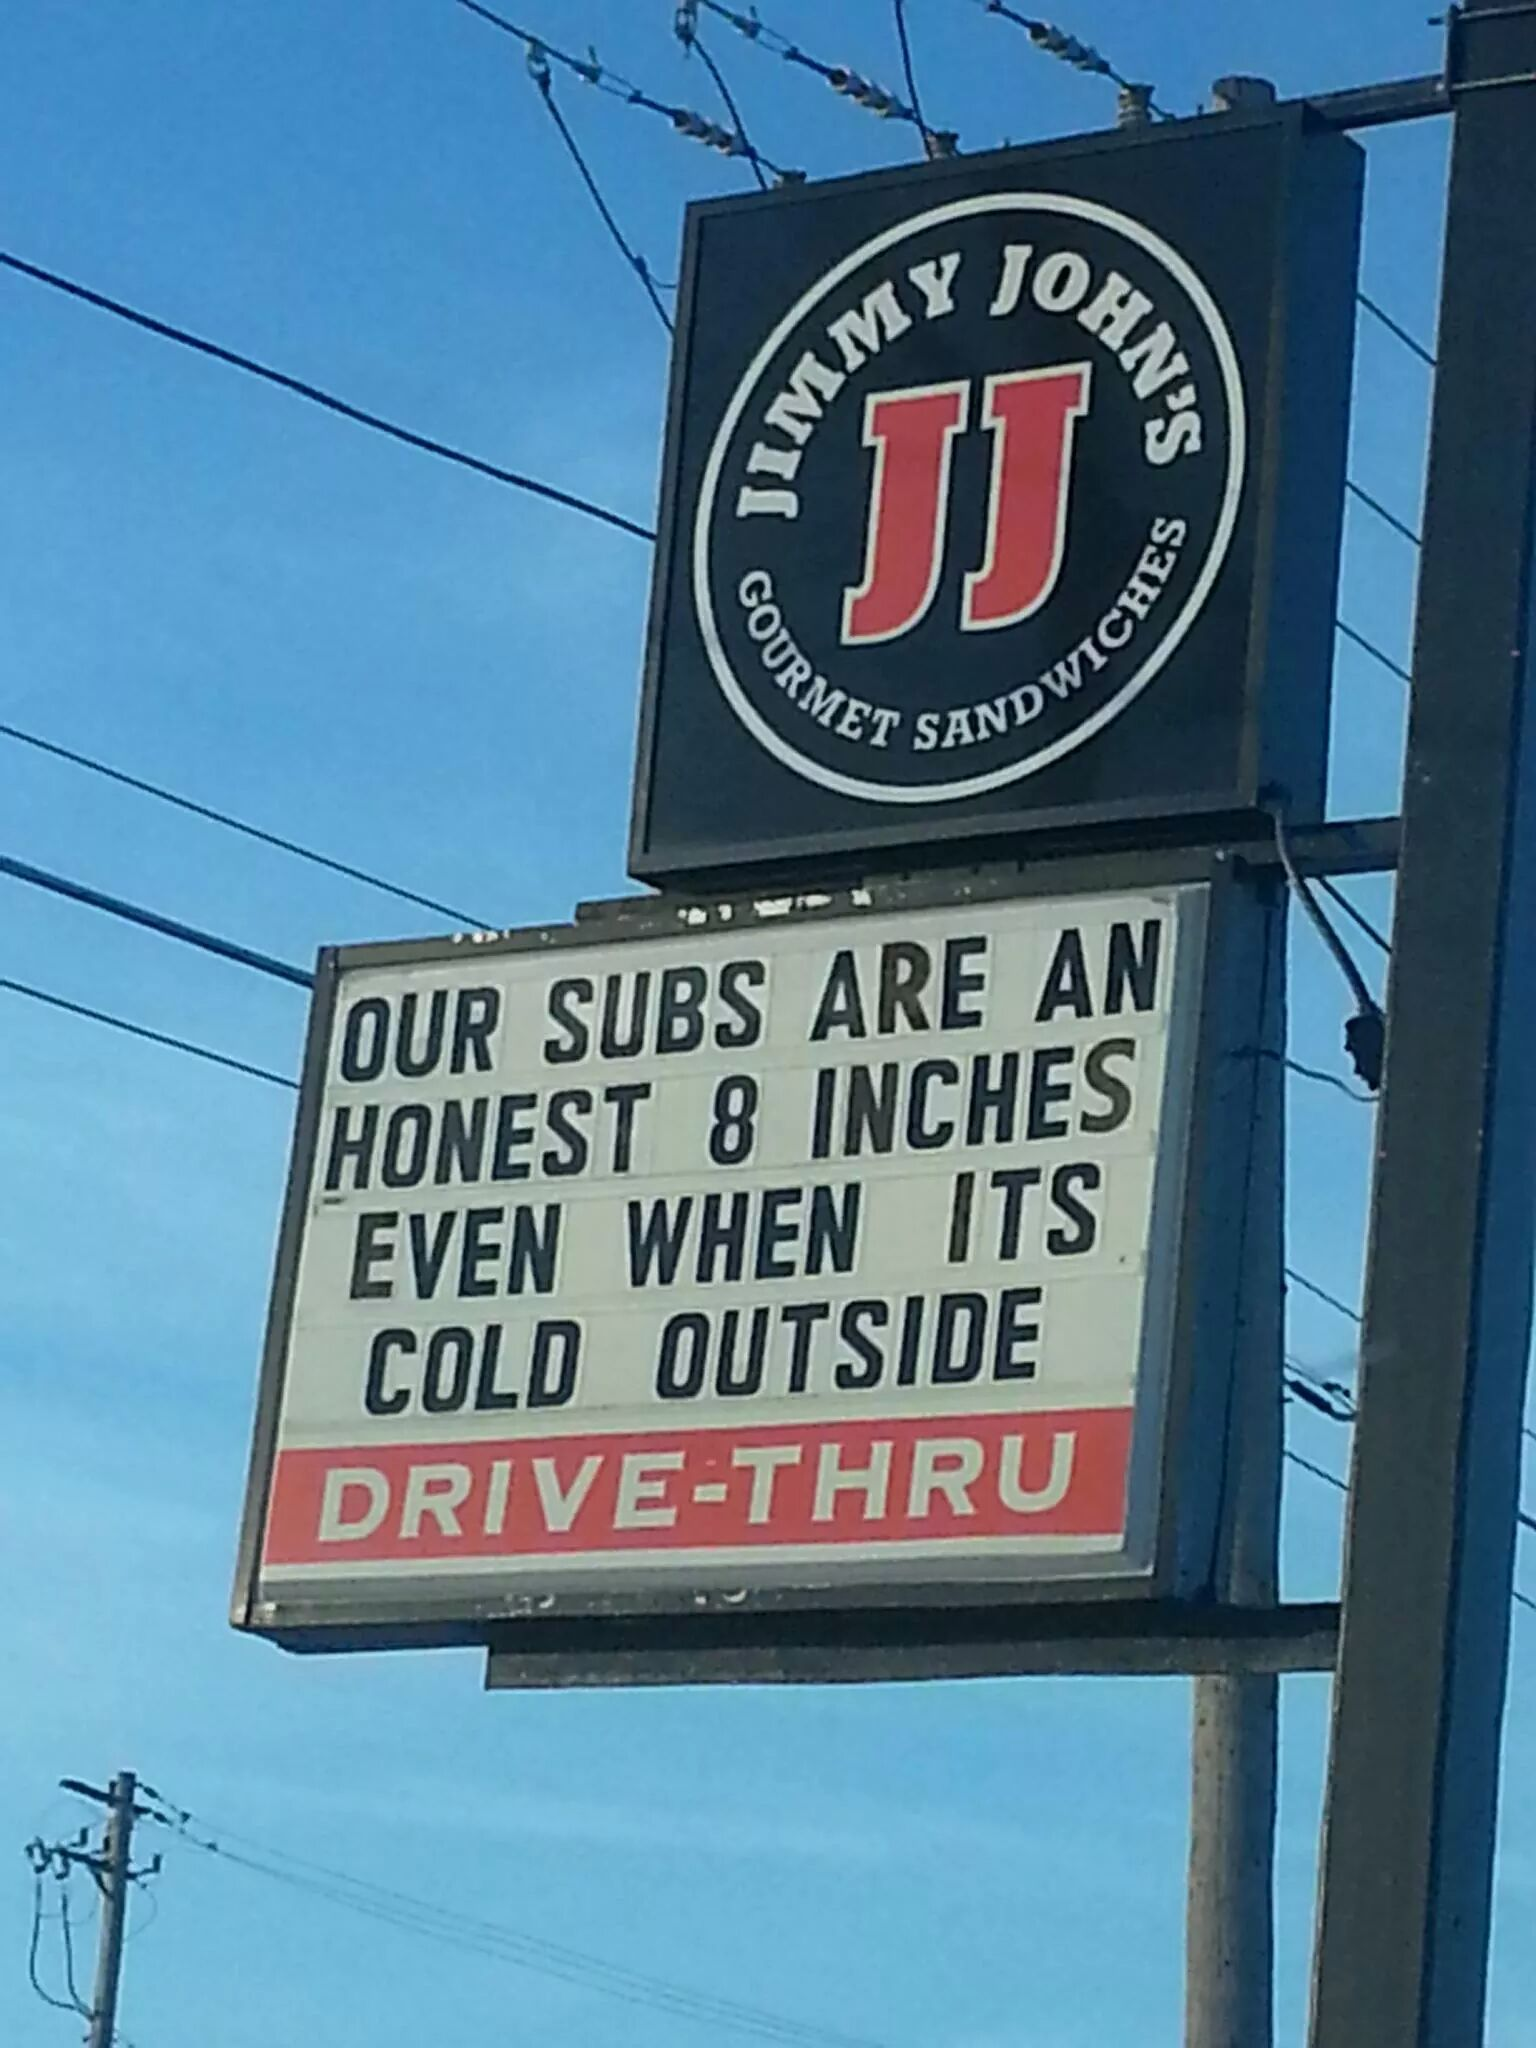 Jimmy John's Promises You Will Get A Solid 8 Inches No Matter What The Weather Is Like.